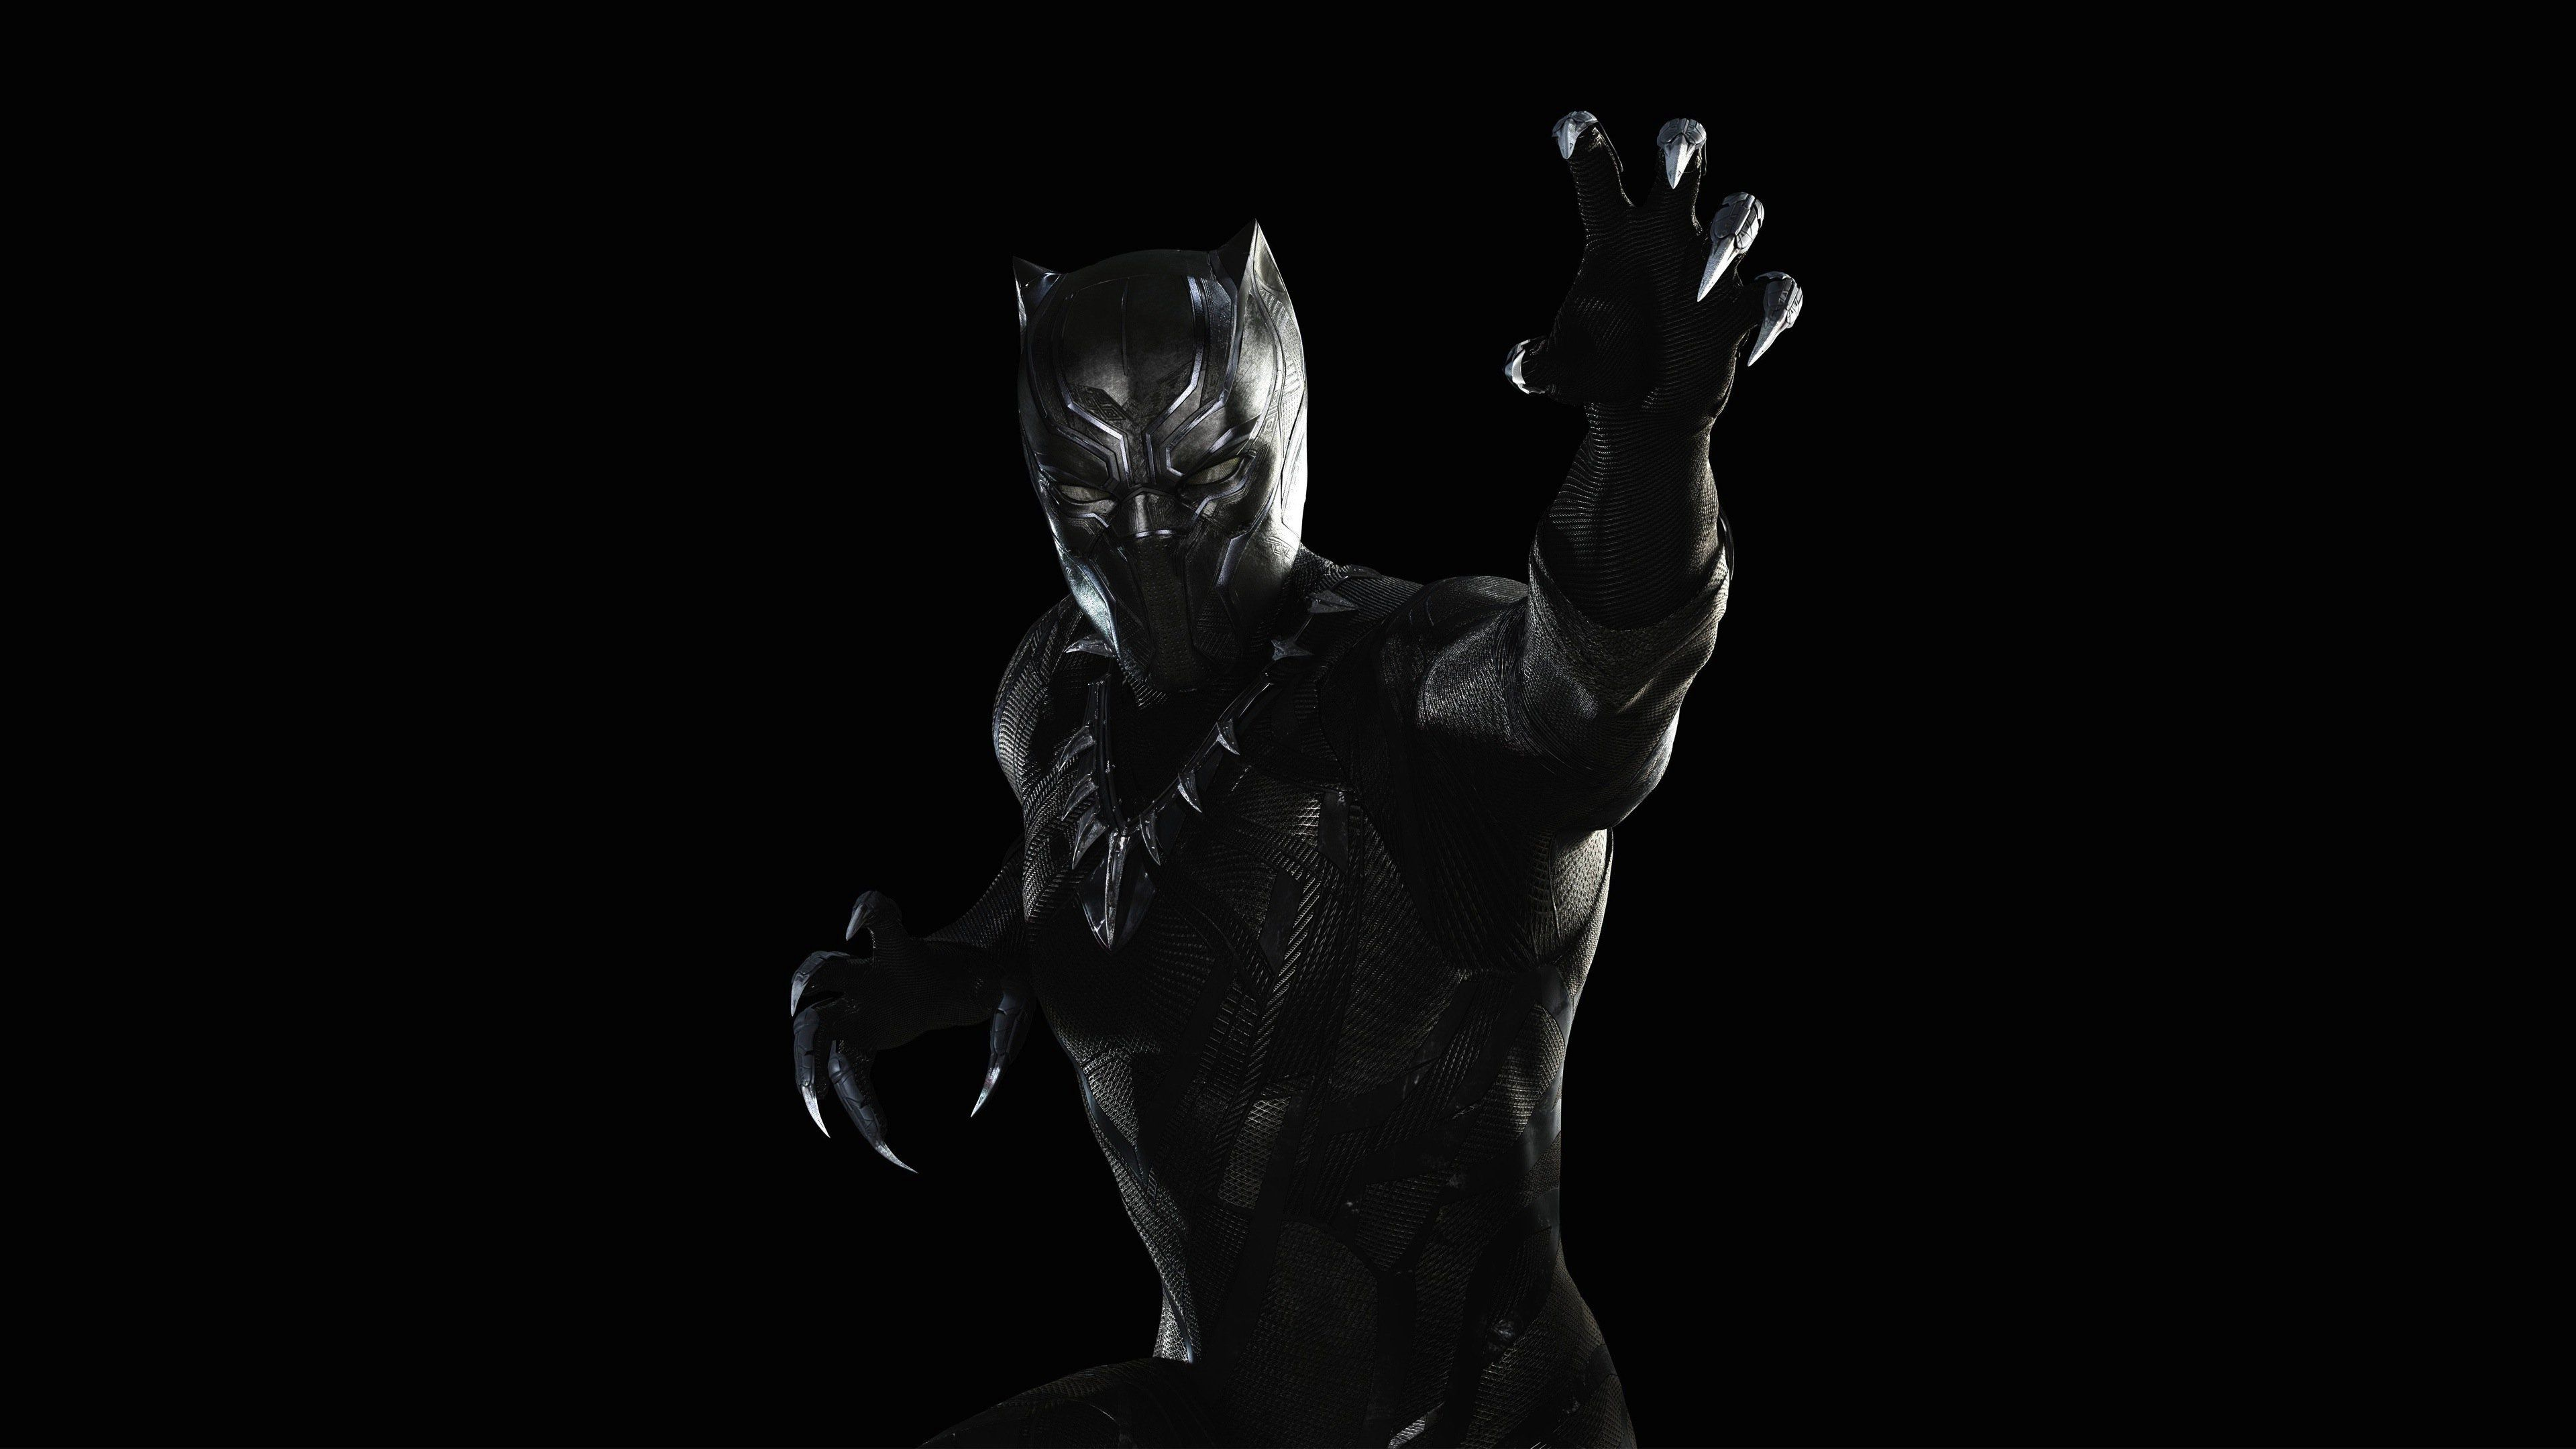 88 Black Panther Marvel Wallpapers On Wallpapersafari